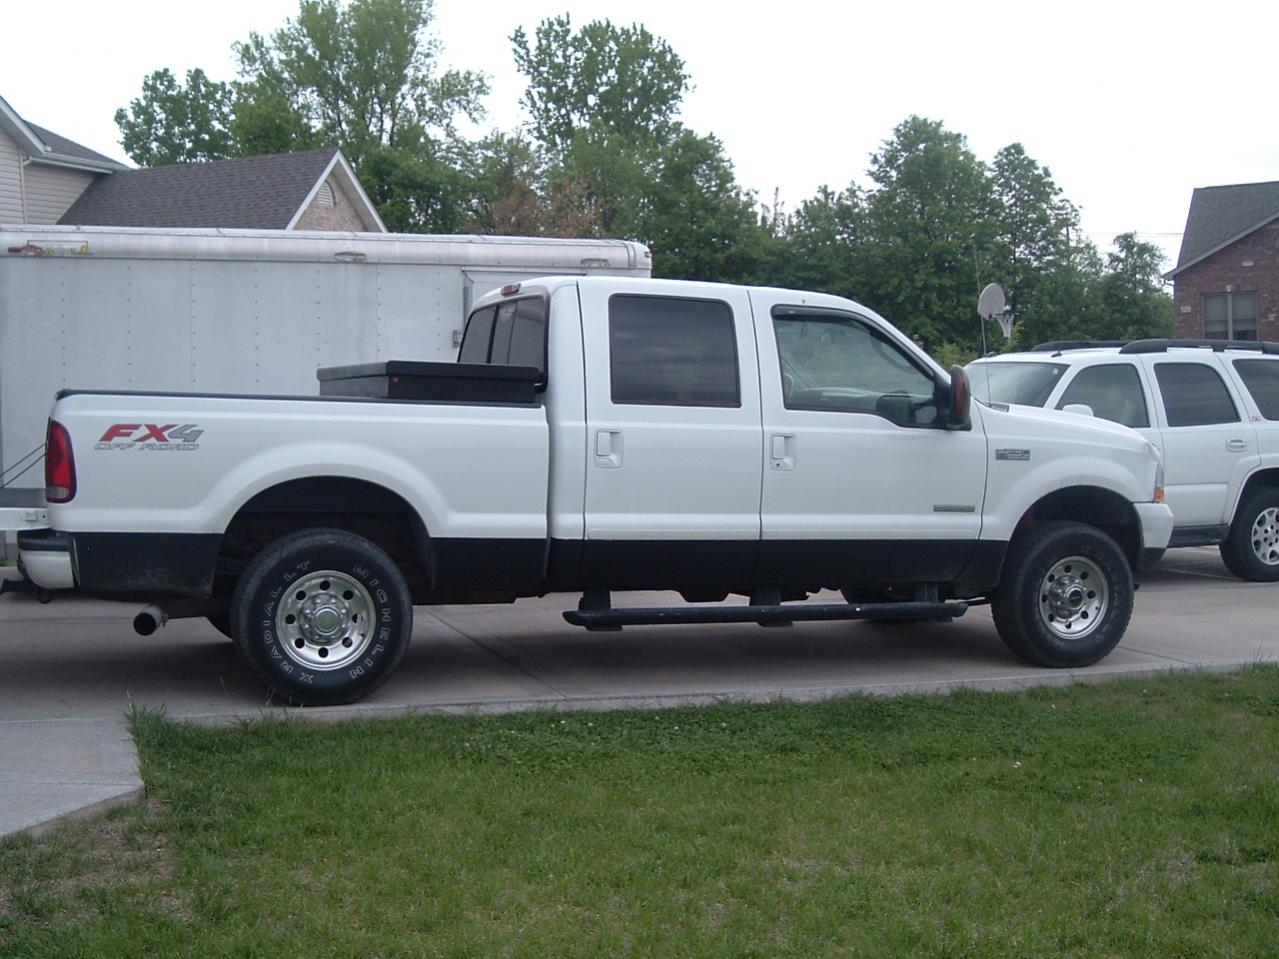 Craigslist trucks louisiana - Craigslist Dallas Tx Cars And Trucks For Sale By Owner Craigslist Minneapolis Cars And